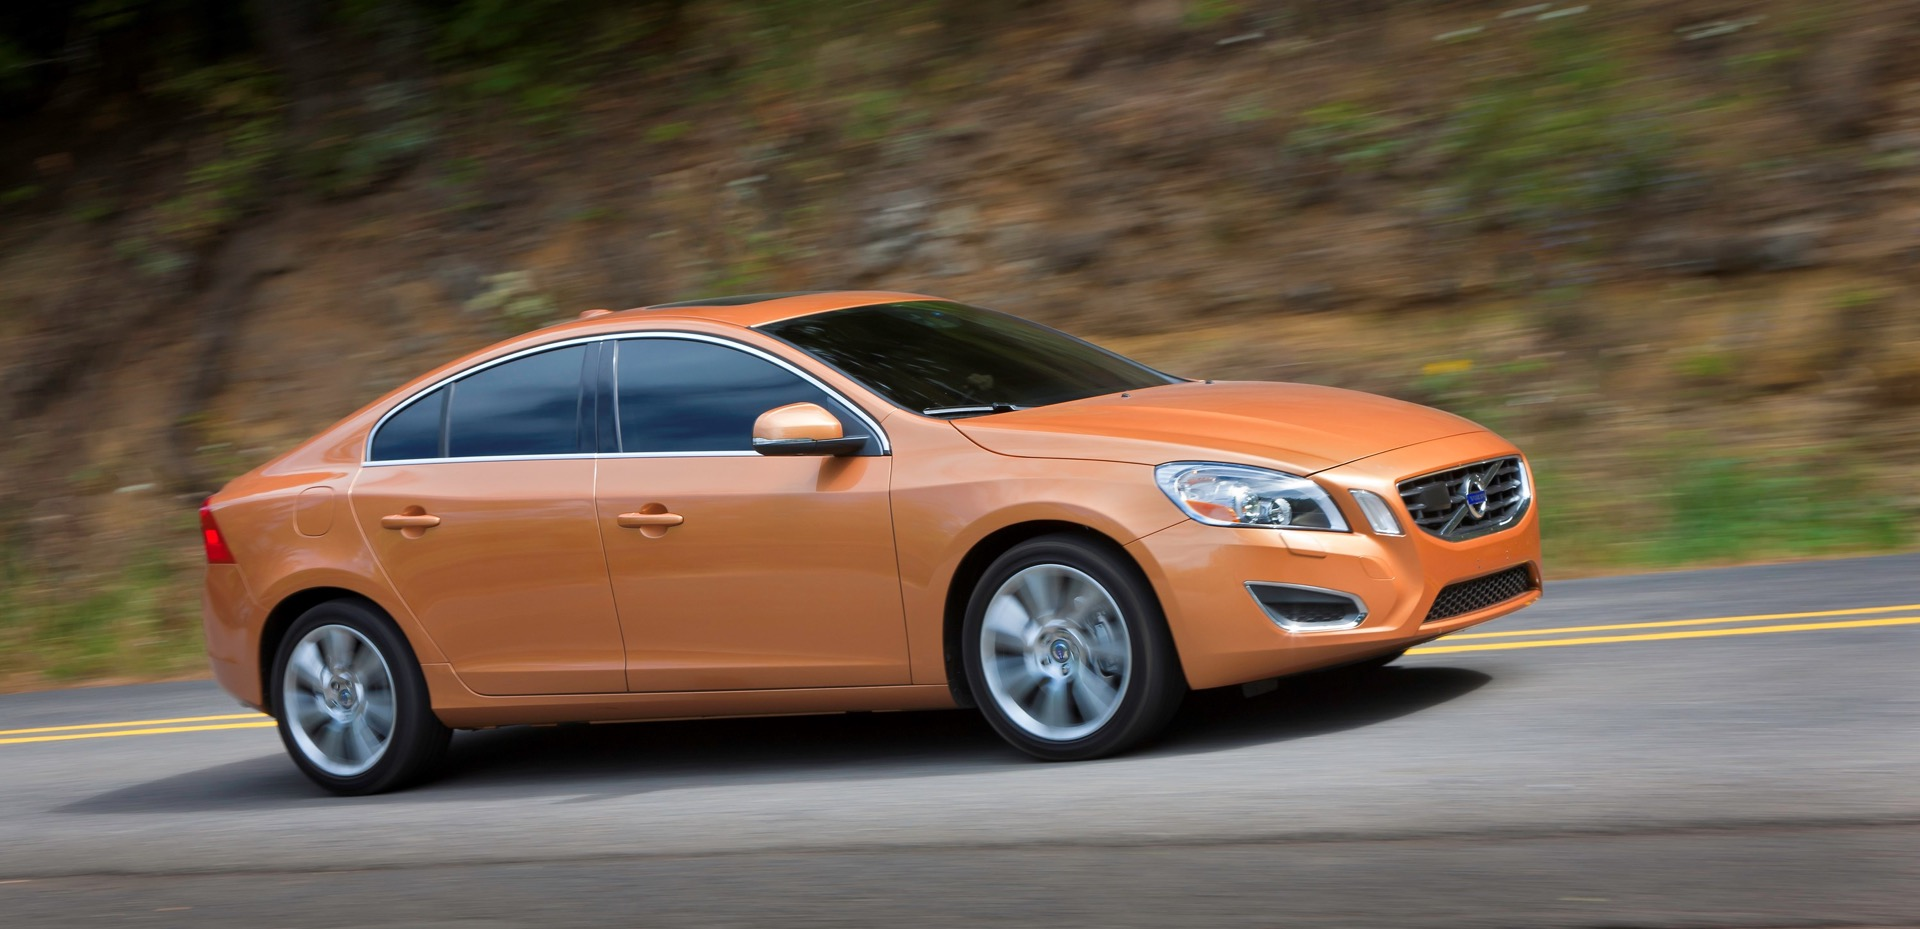 S60 T6 Awd Driving Action06 -  Volvo